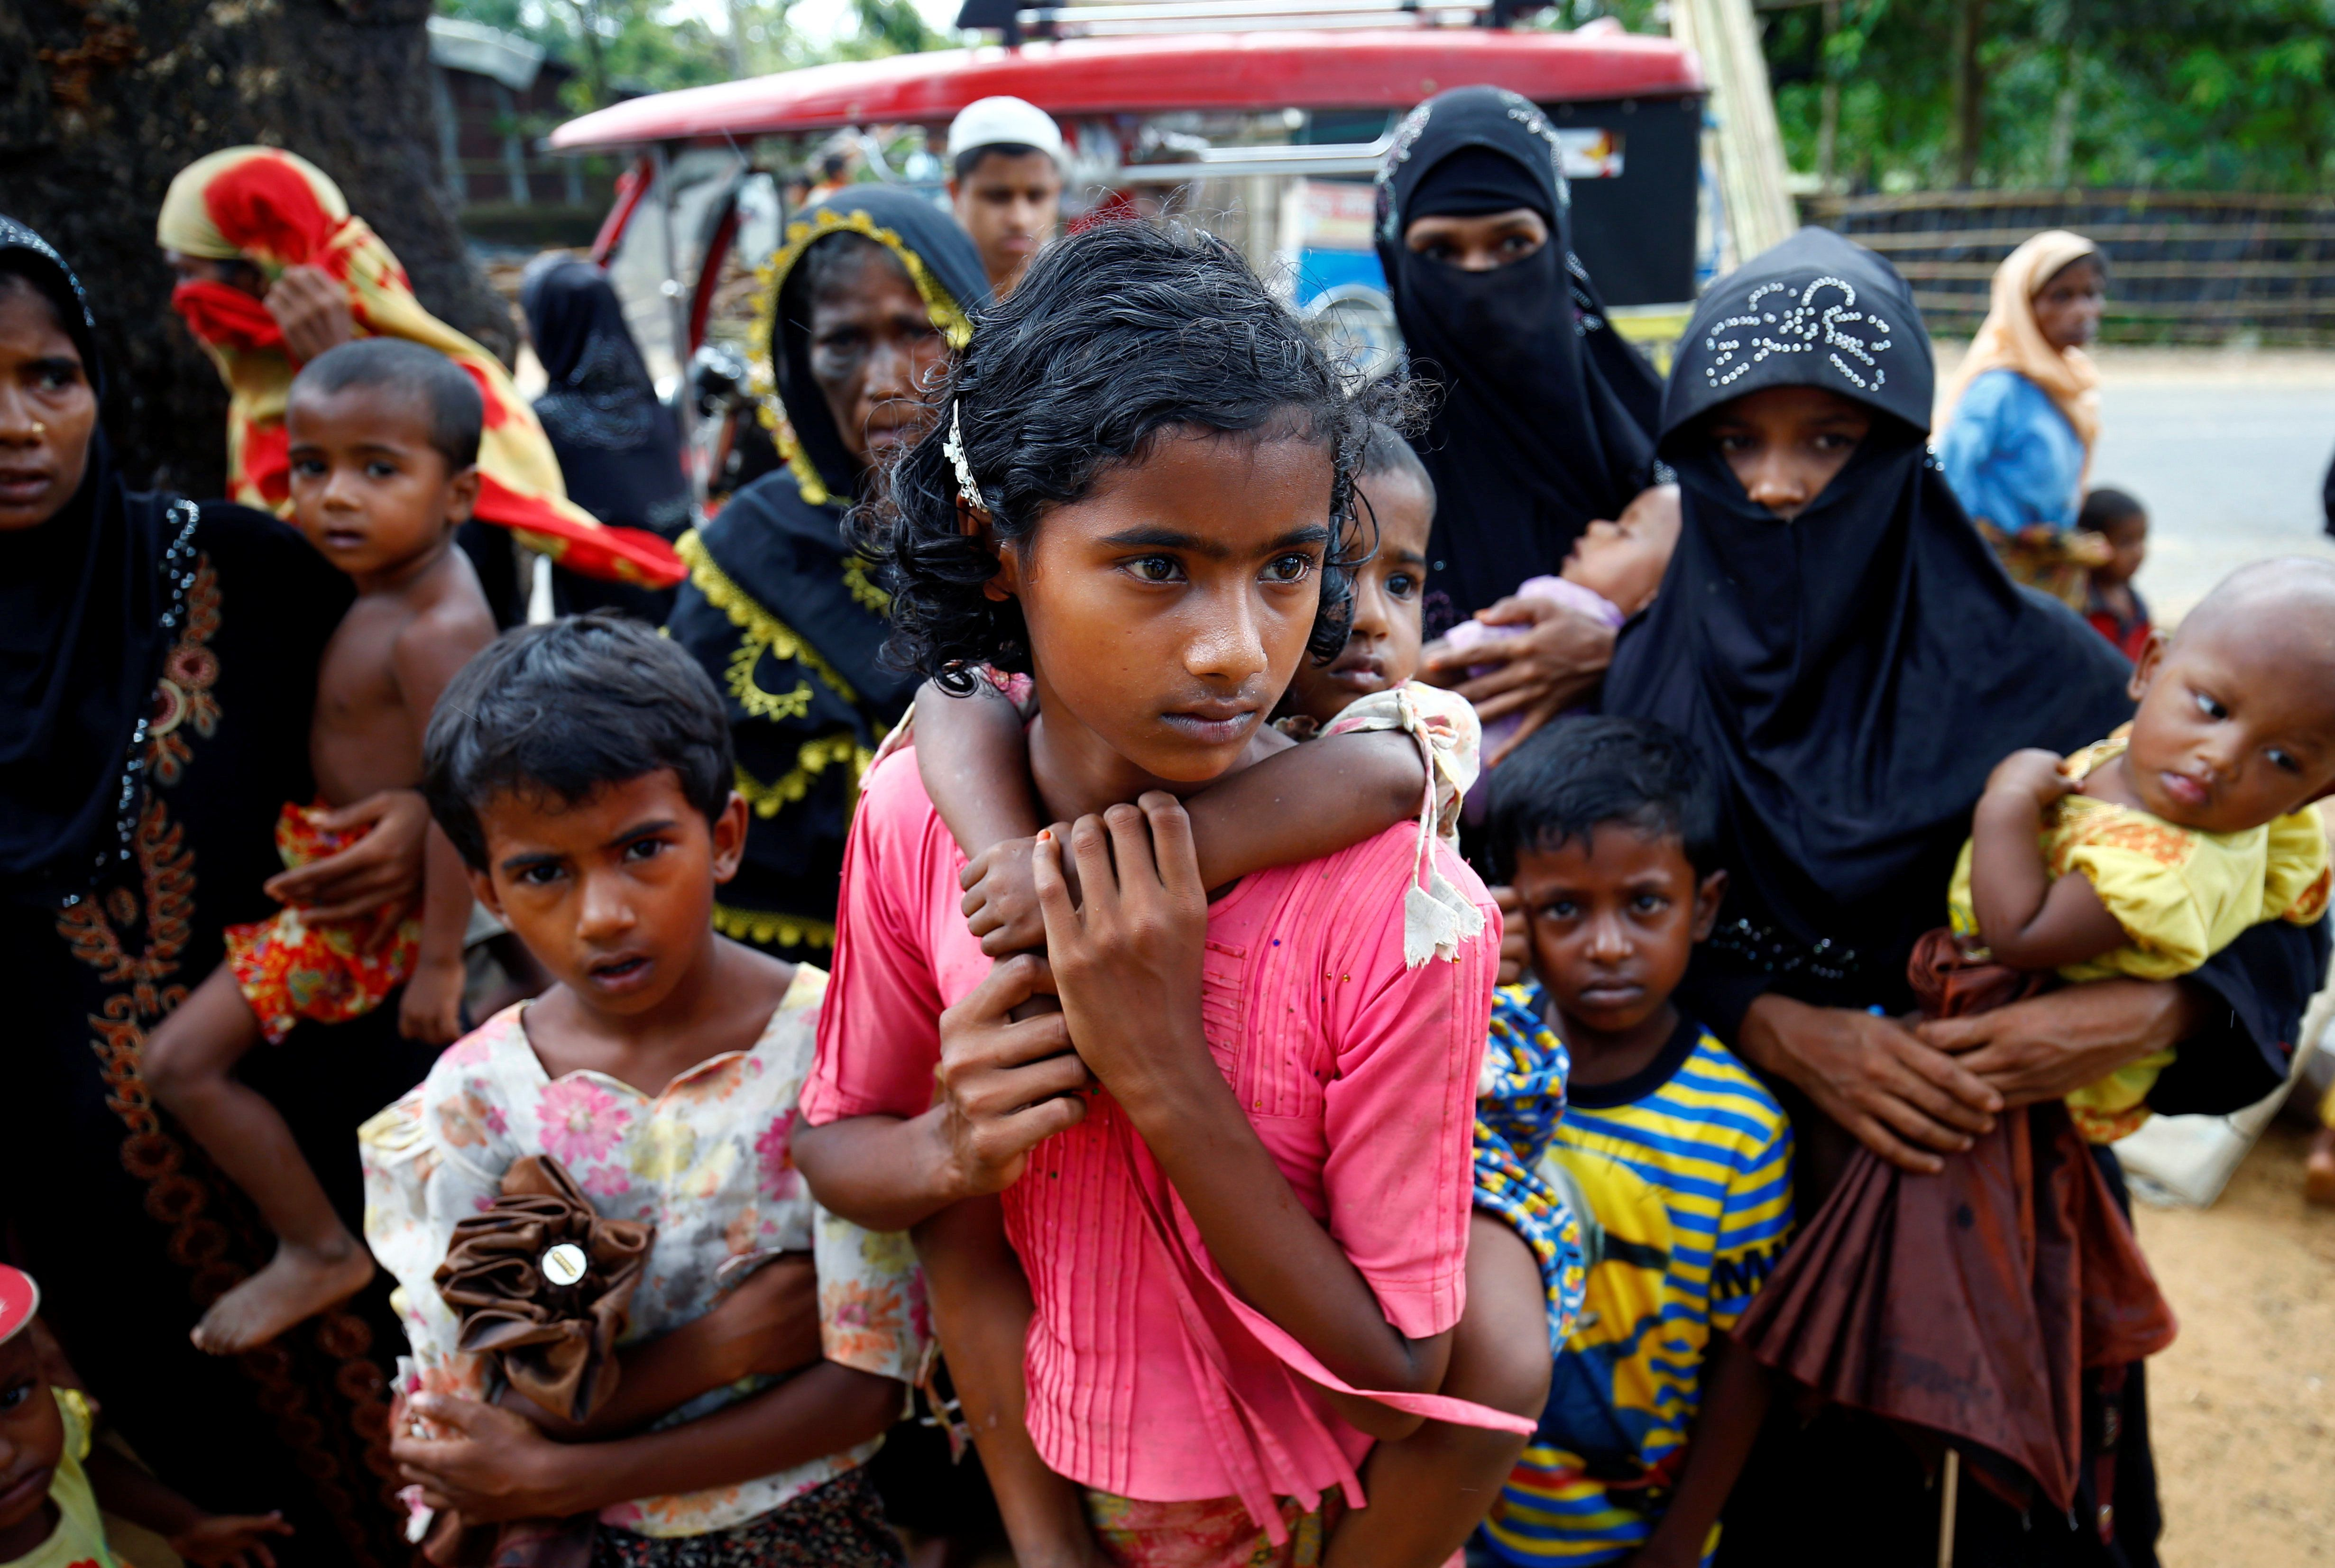 Rohingya refugees arrive near the Kutupalang makeshift Refugee Camp, in Cox's Bazar, Bangladesh on Tuesday.